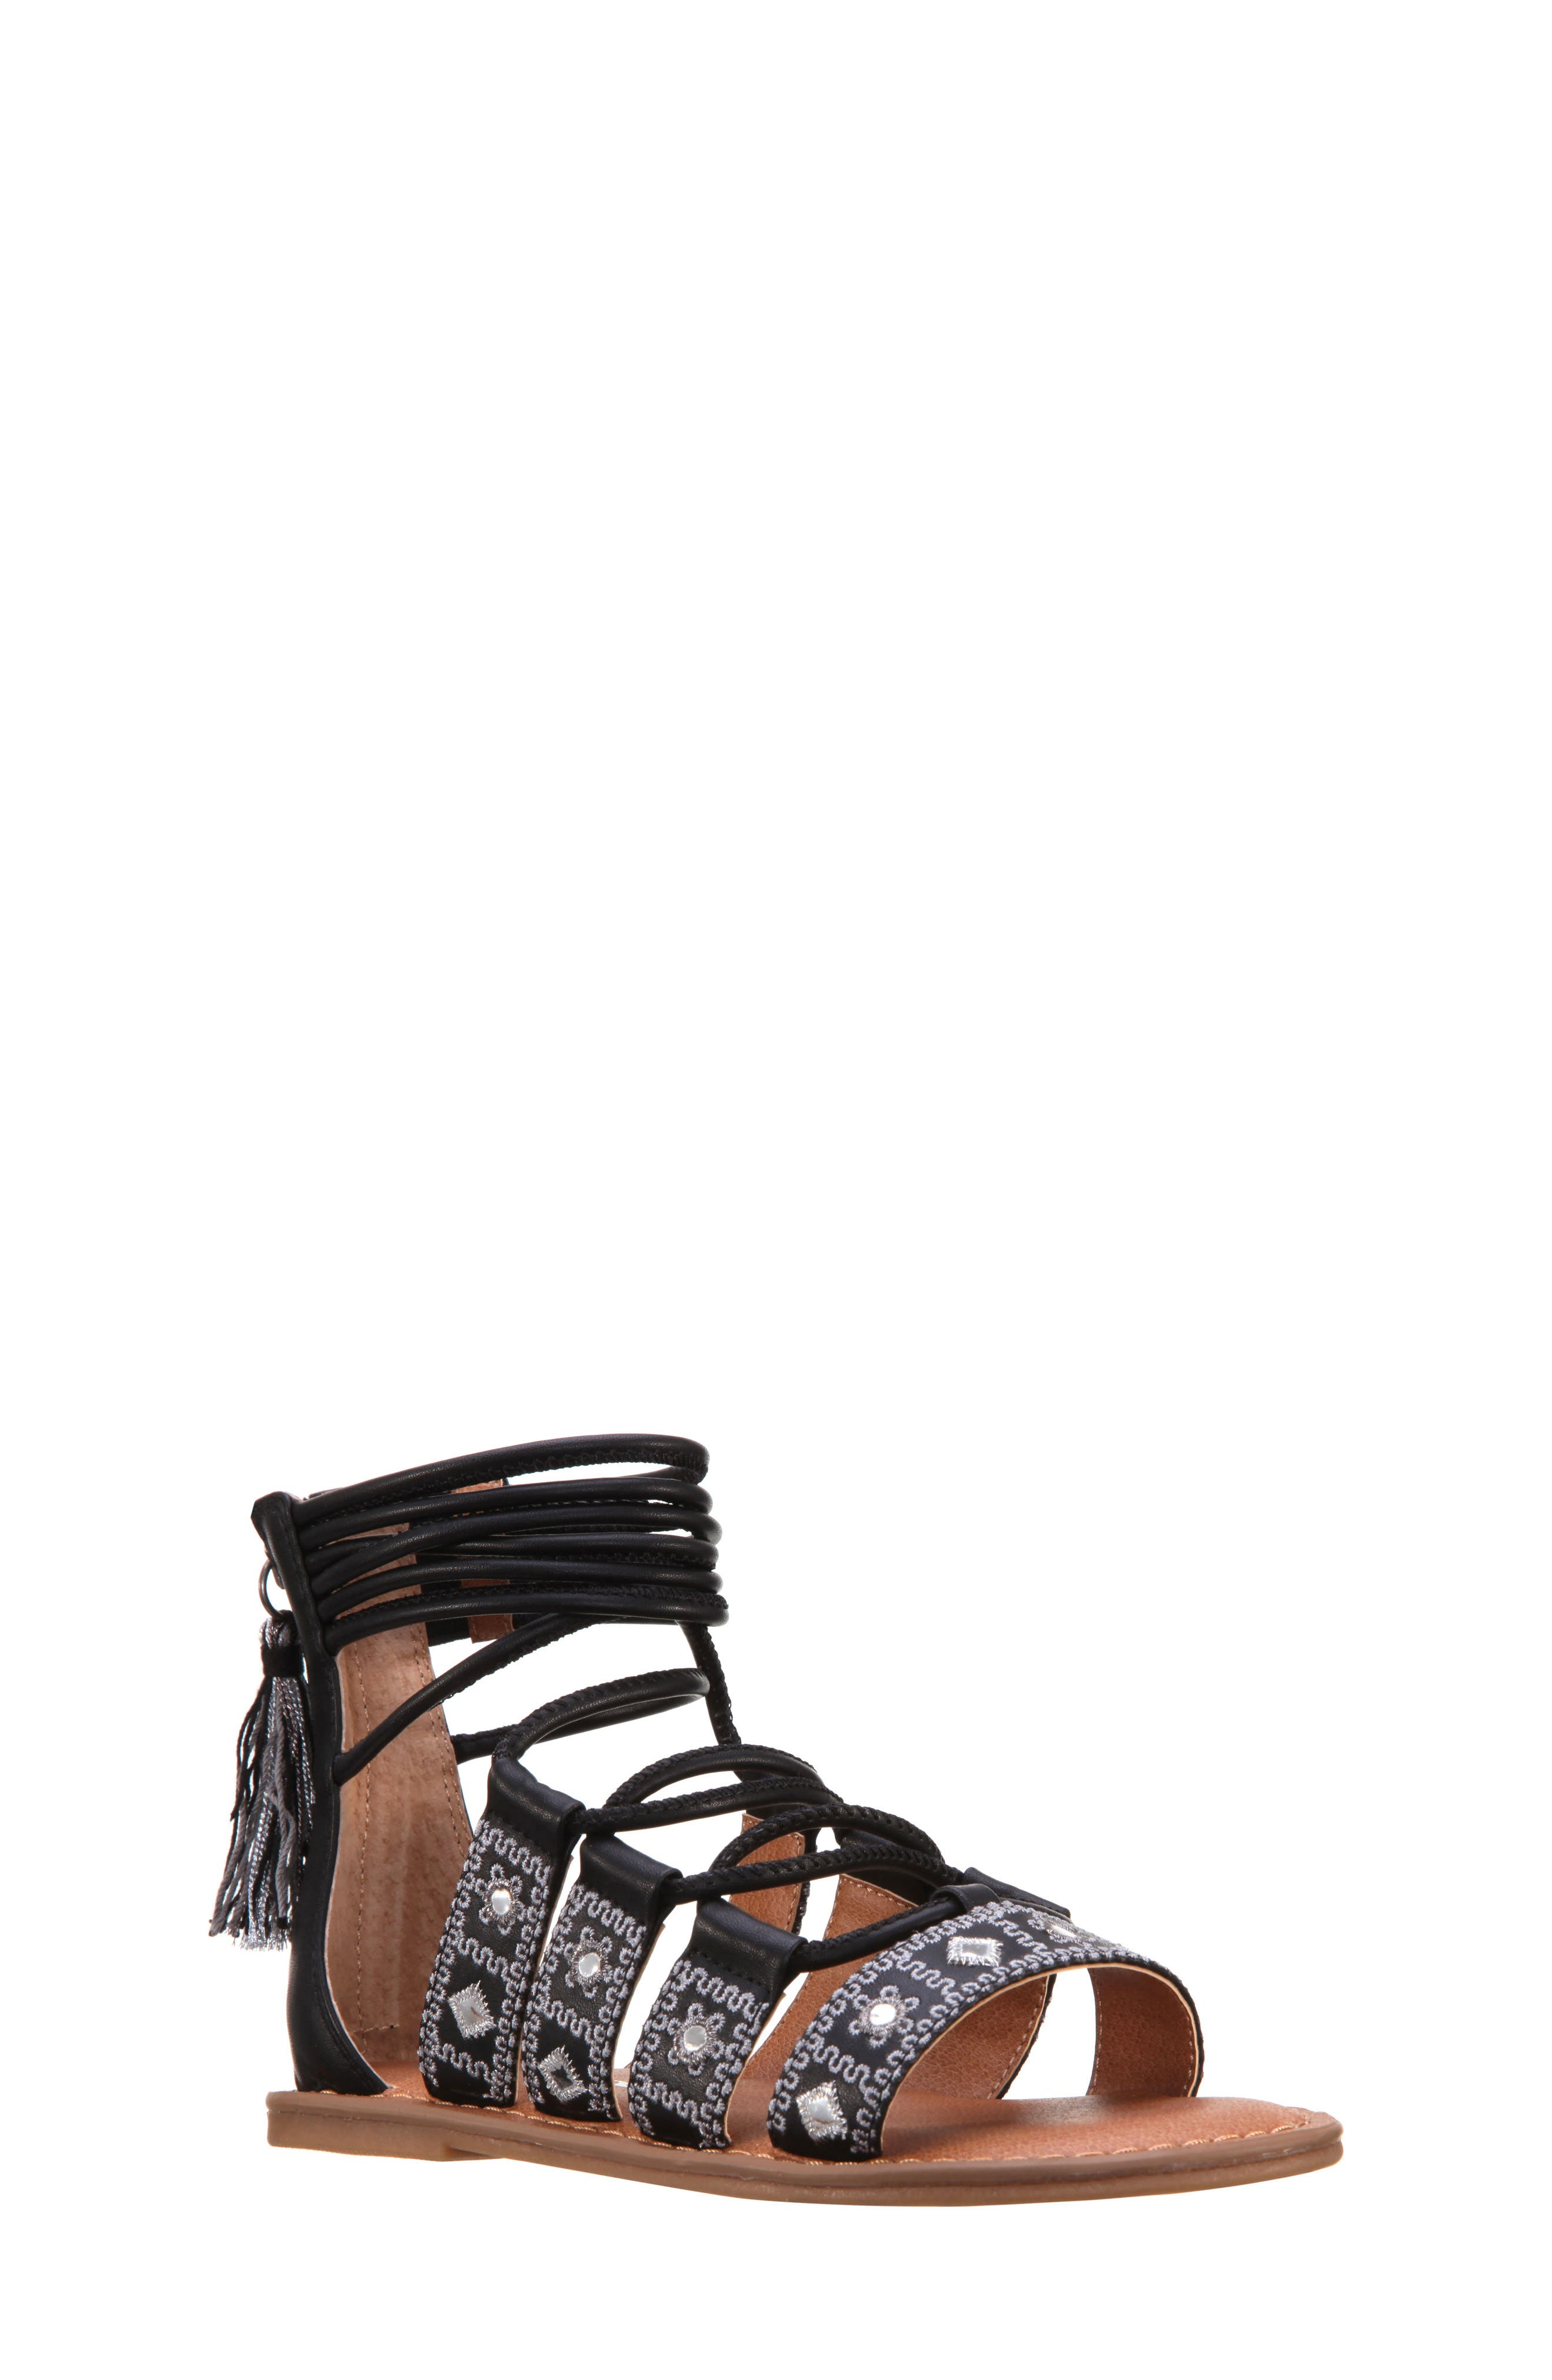 Sherryll Embellished Gladiator Sandal,                         Main,                         color, 009